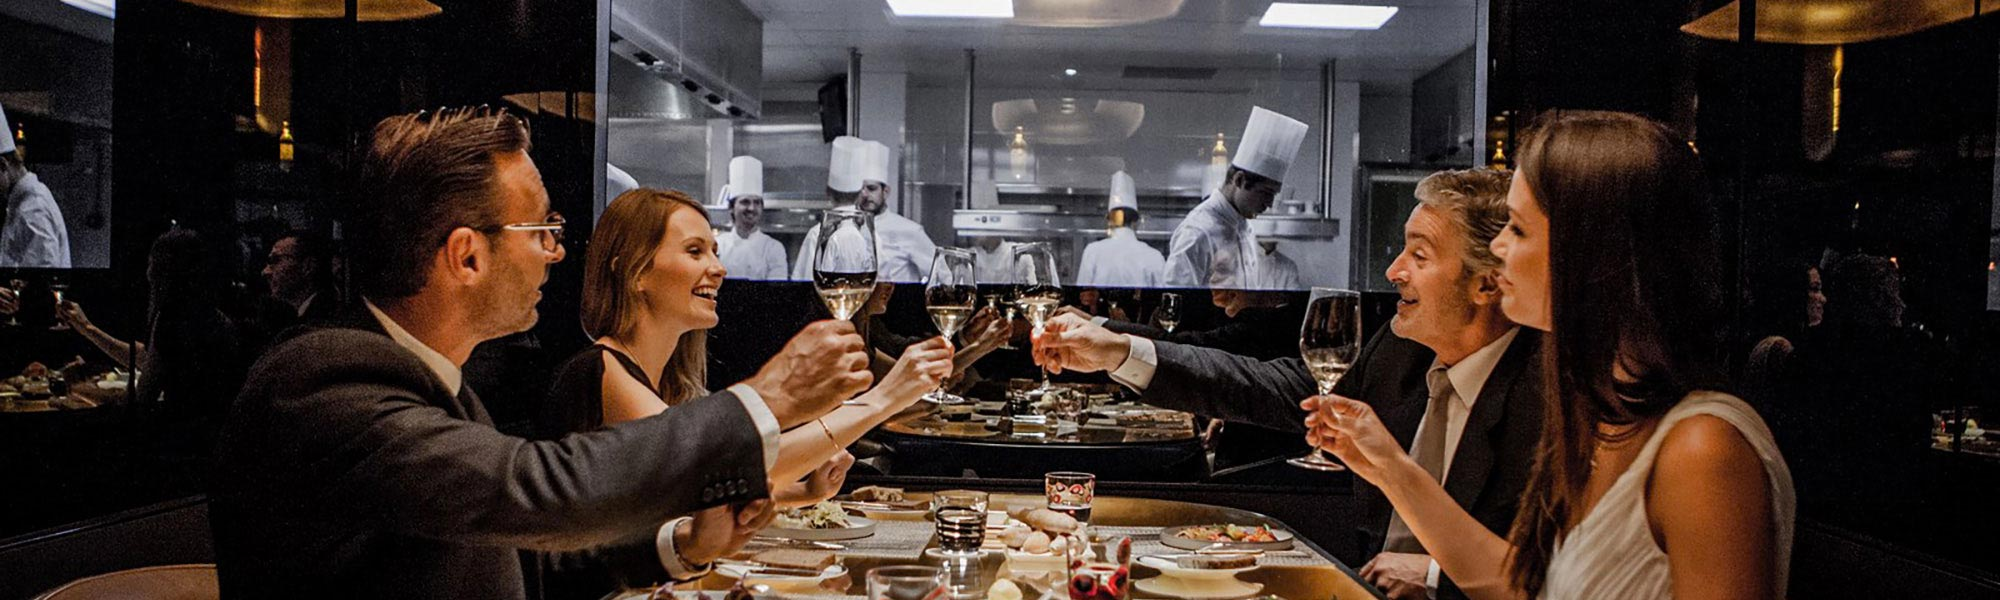 Immersion Into The Kitchen Of Alain Ducasse S Restaurant Greets